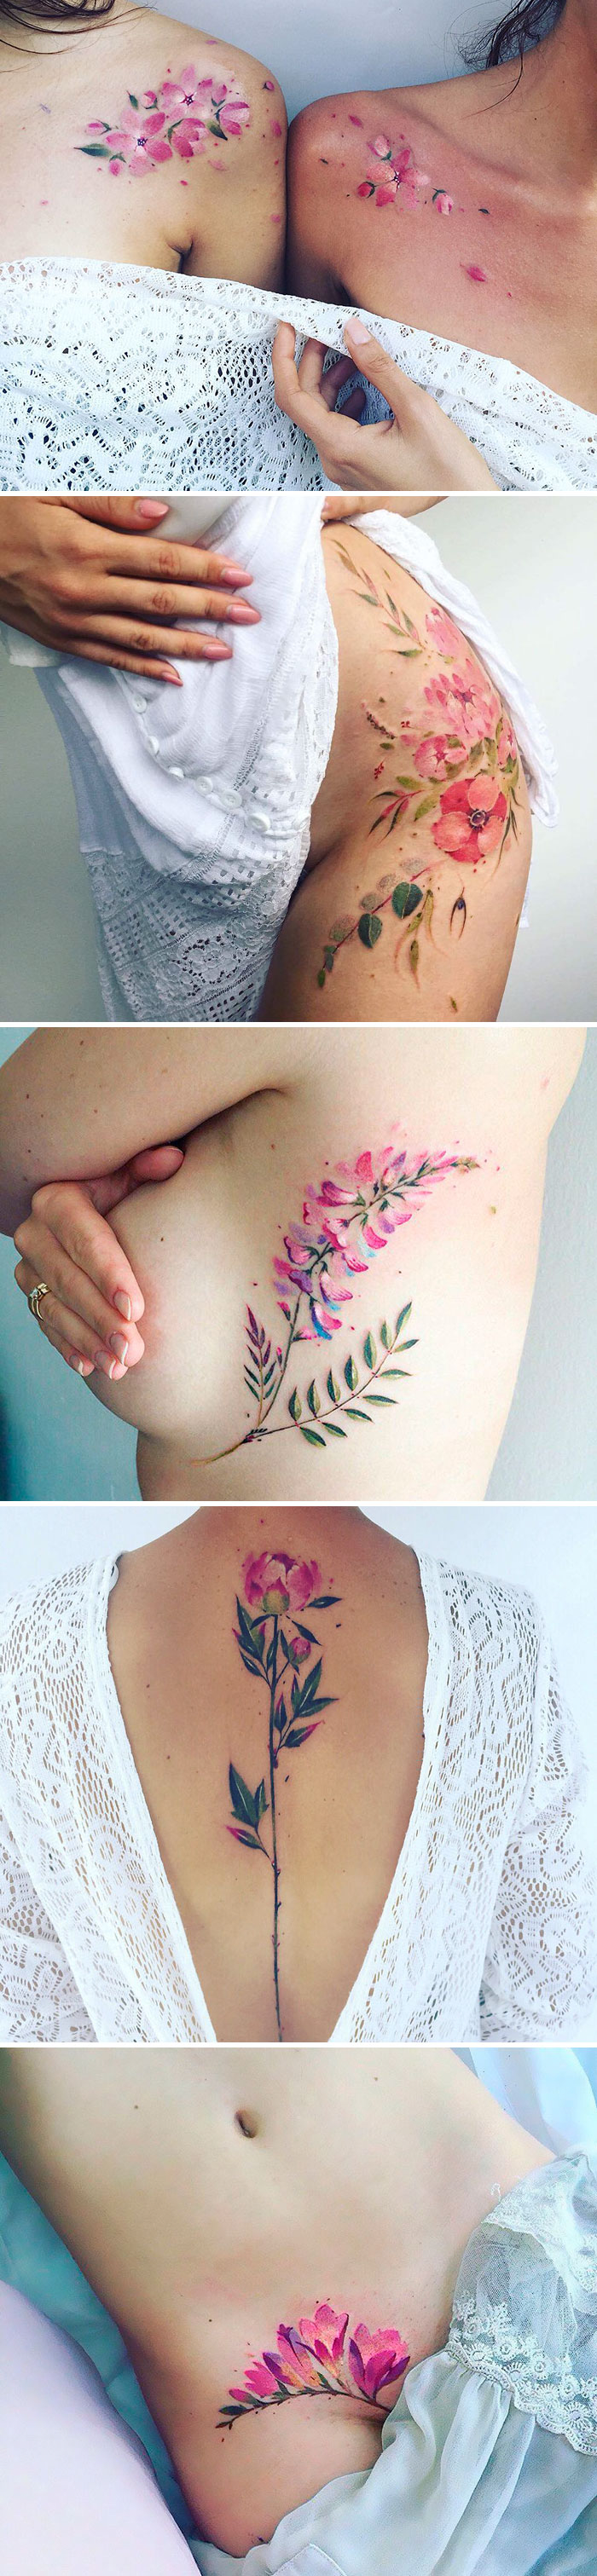 floral-tattoo-artists-2-58e254a999b90__700